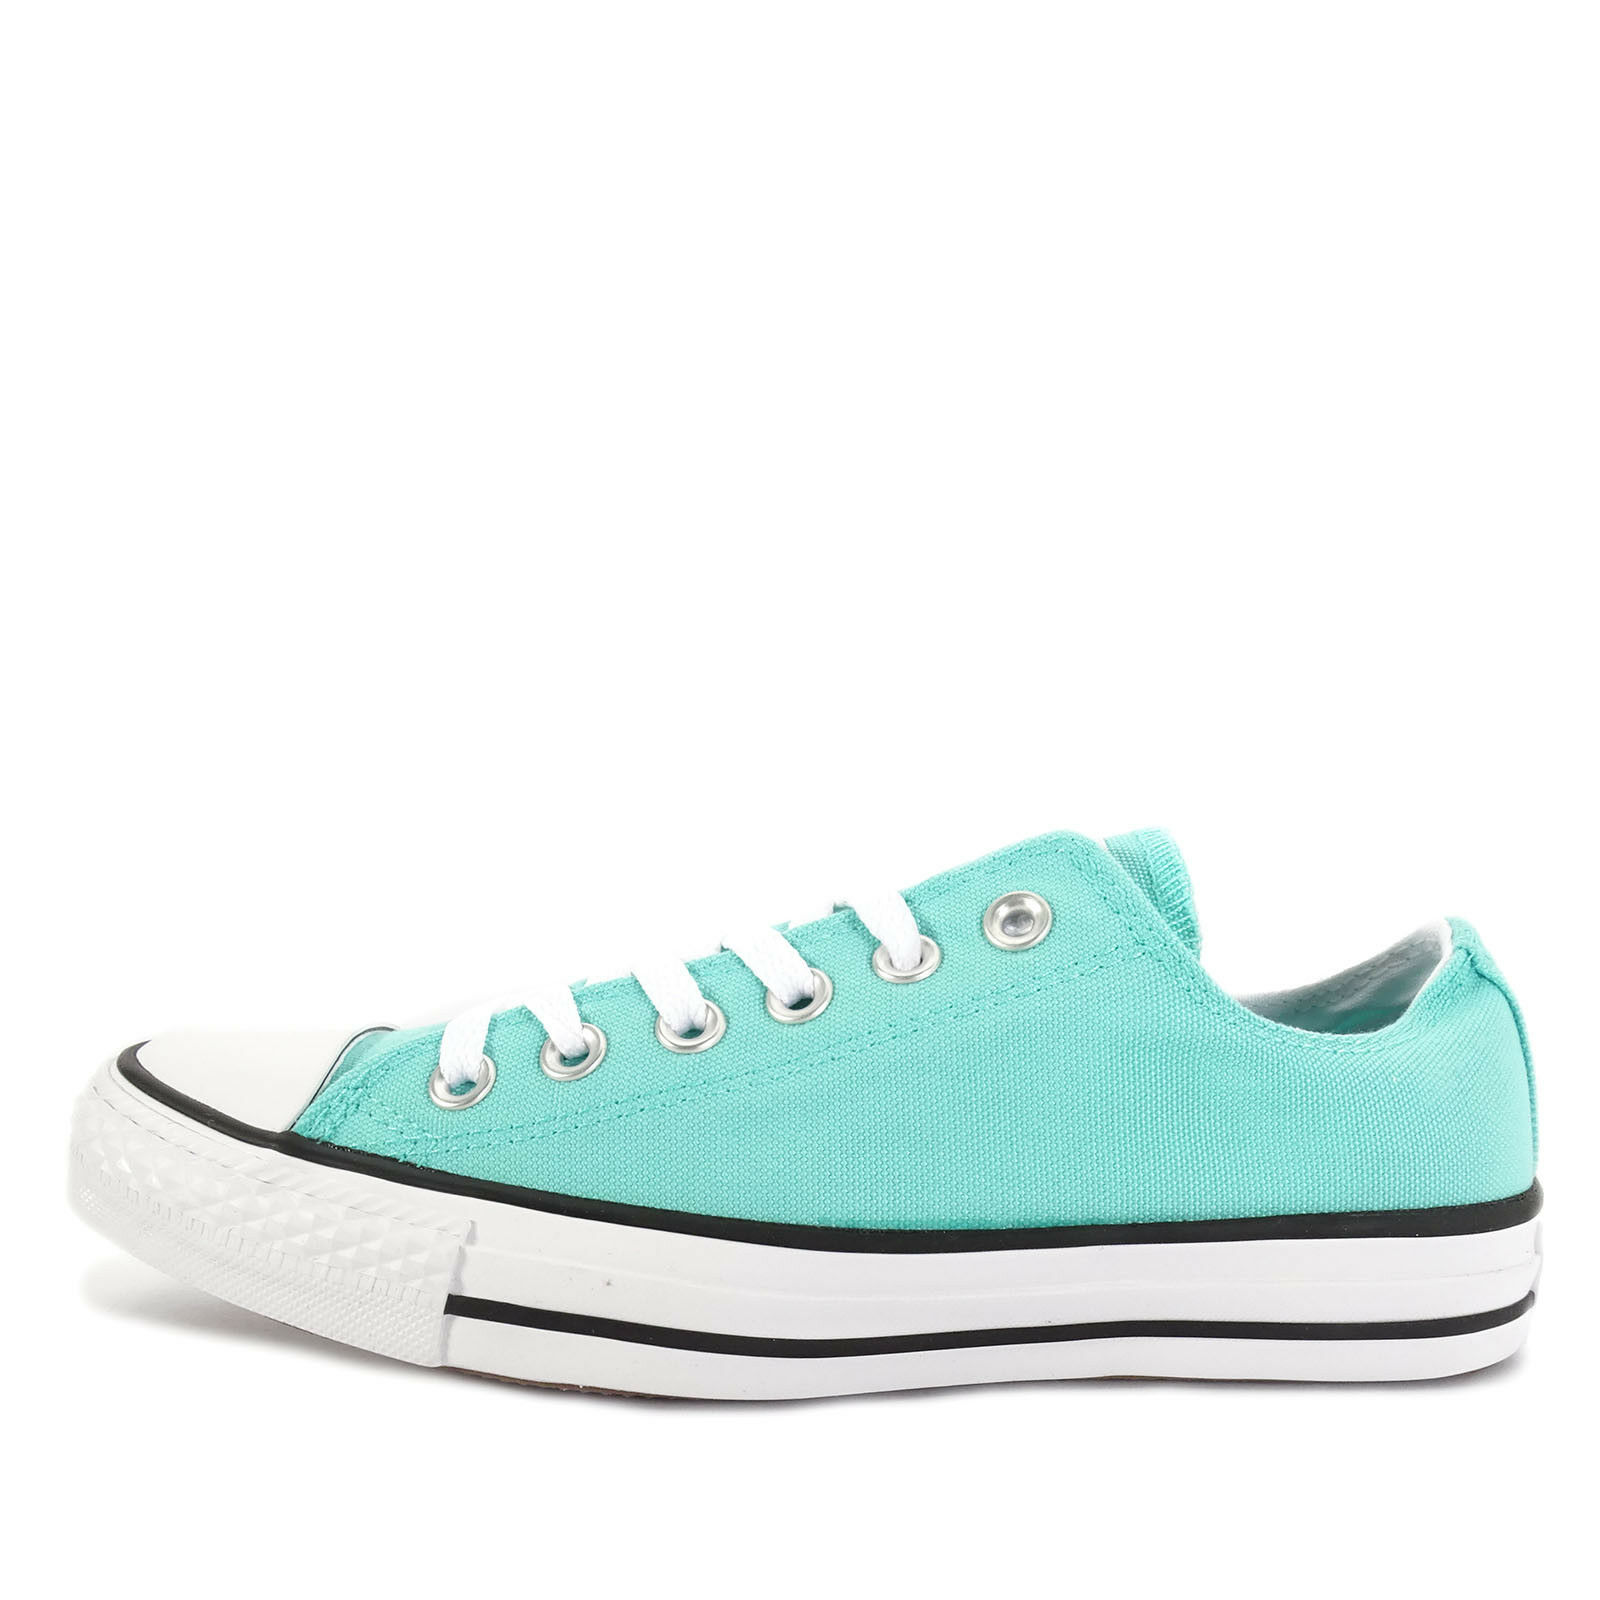 Converse Chuck [152929C] Taylor All Star CTAS [152929C] Chuck Unisex Casual Shoes Clear Jade 389cfe